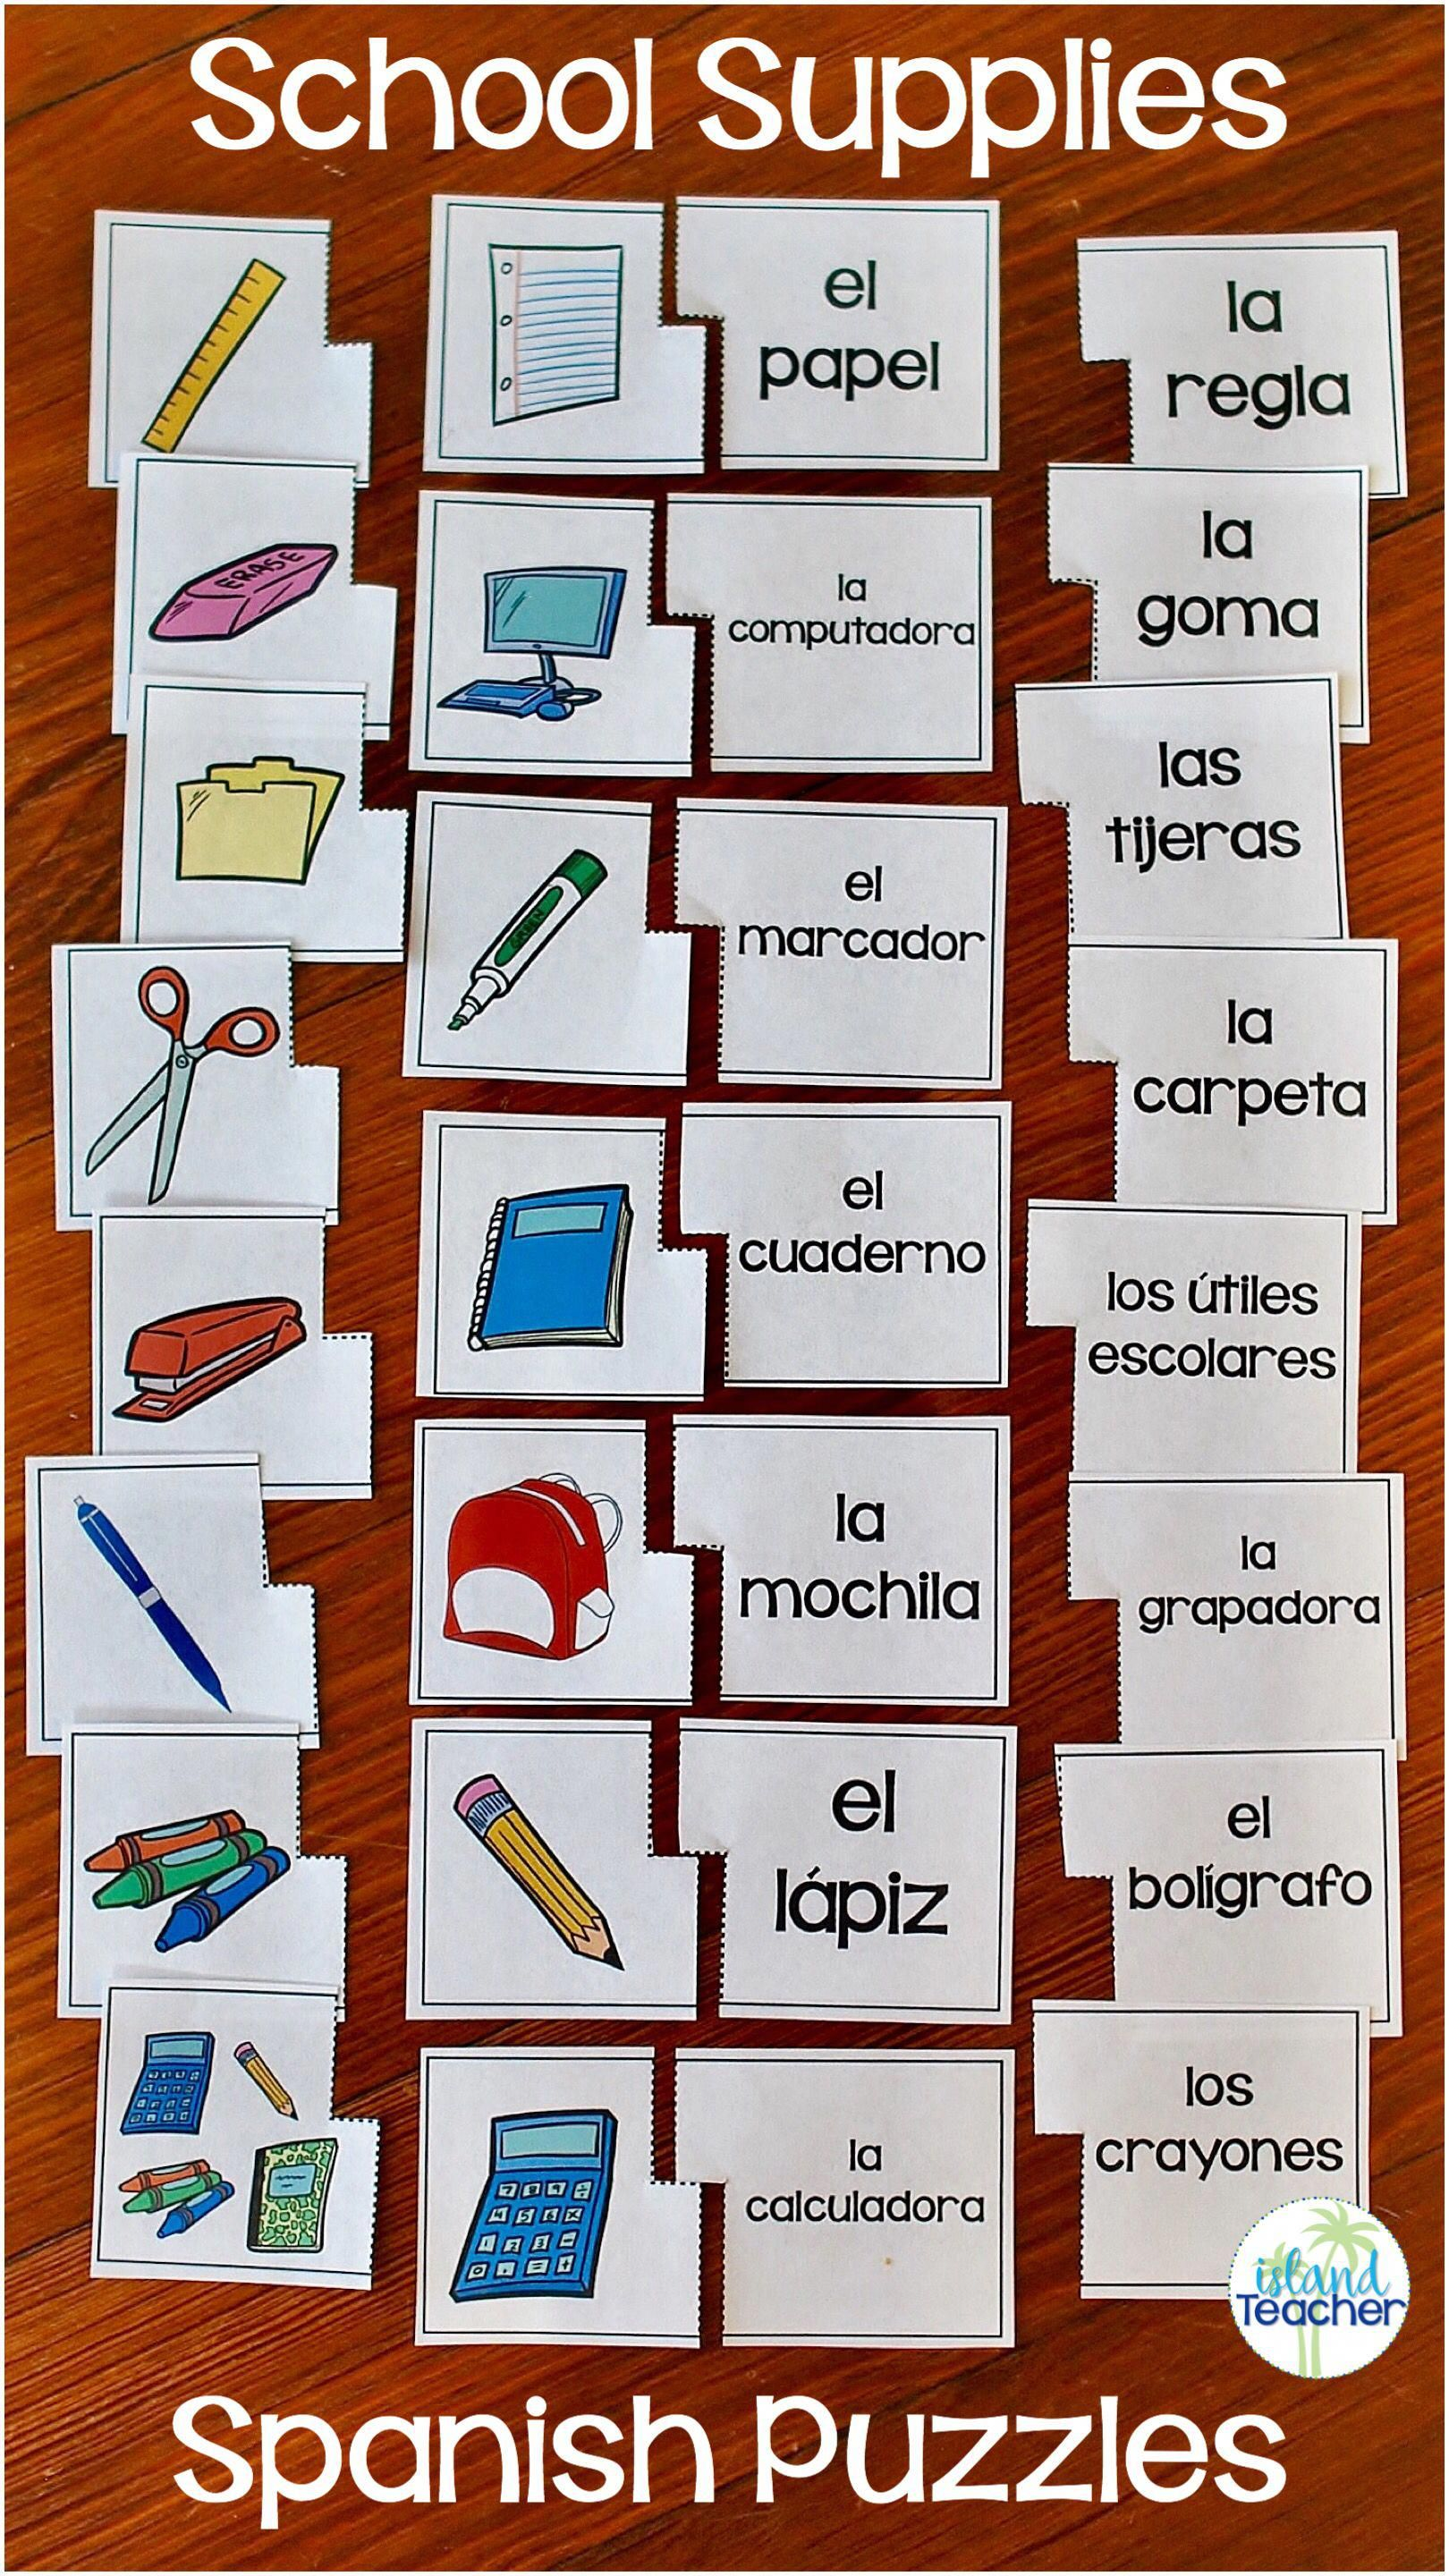 Practice Spanish School Supplies With Matching Puzzles